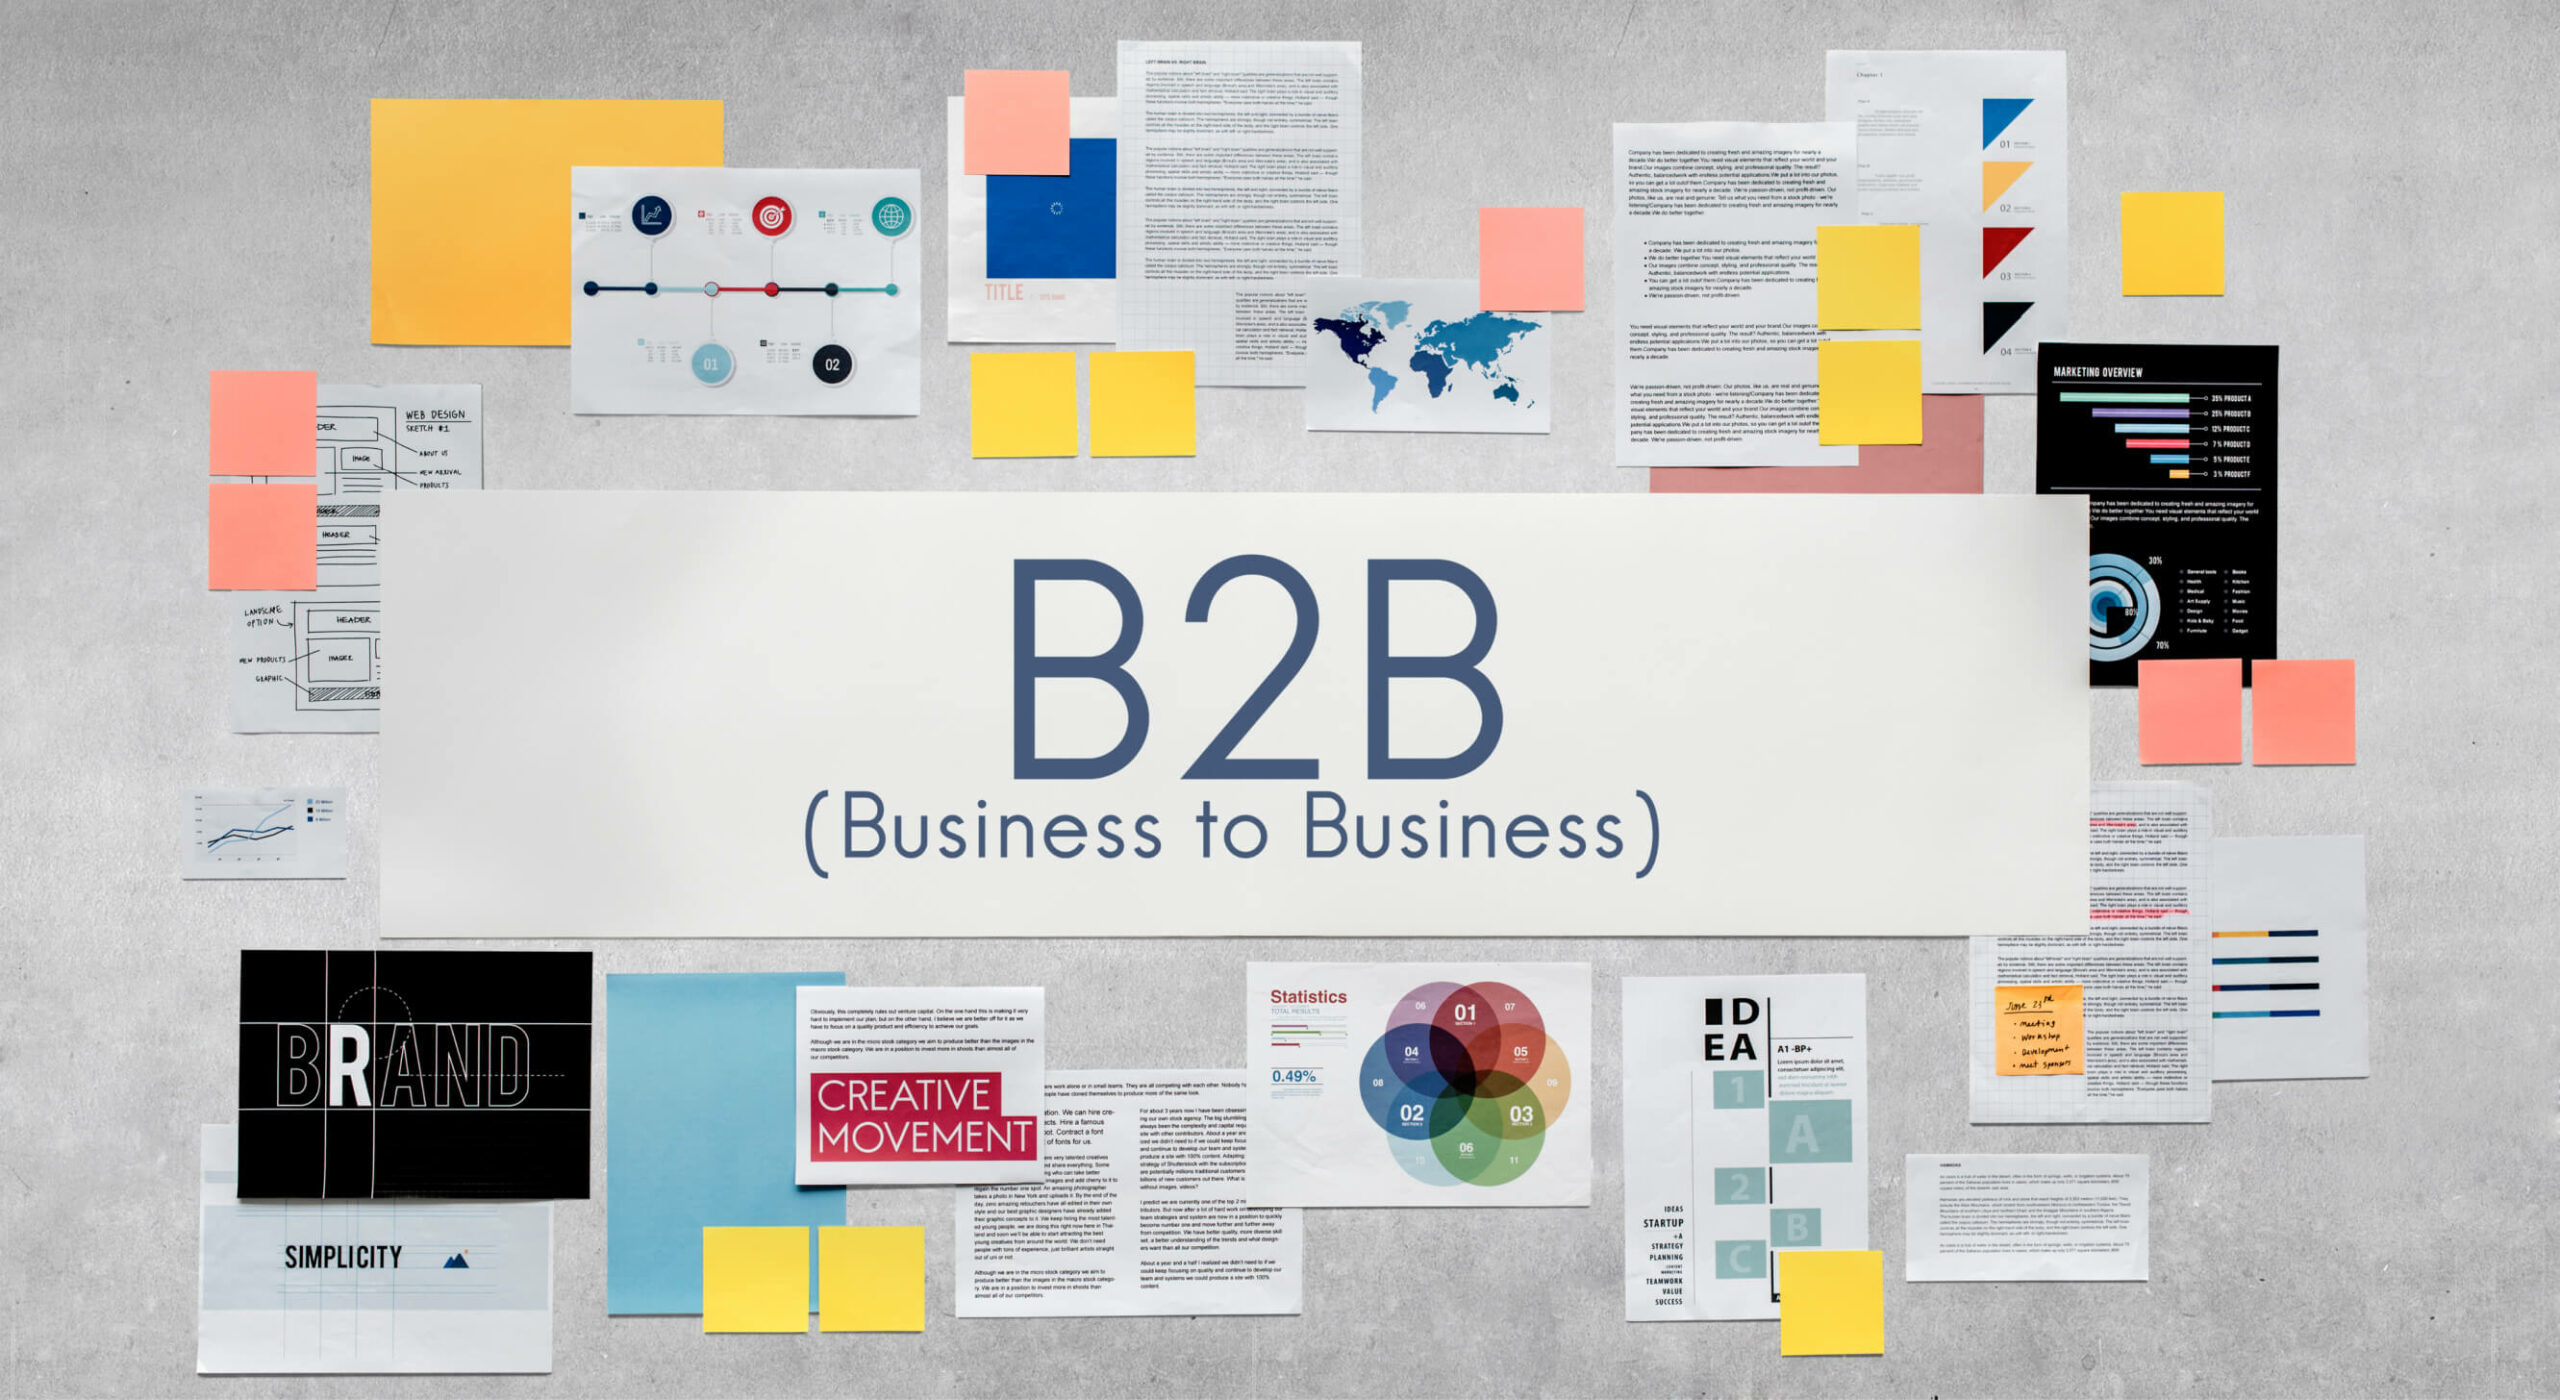 Five Reasons Why B2B PR Works